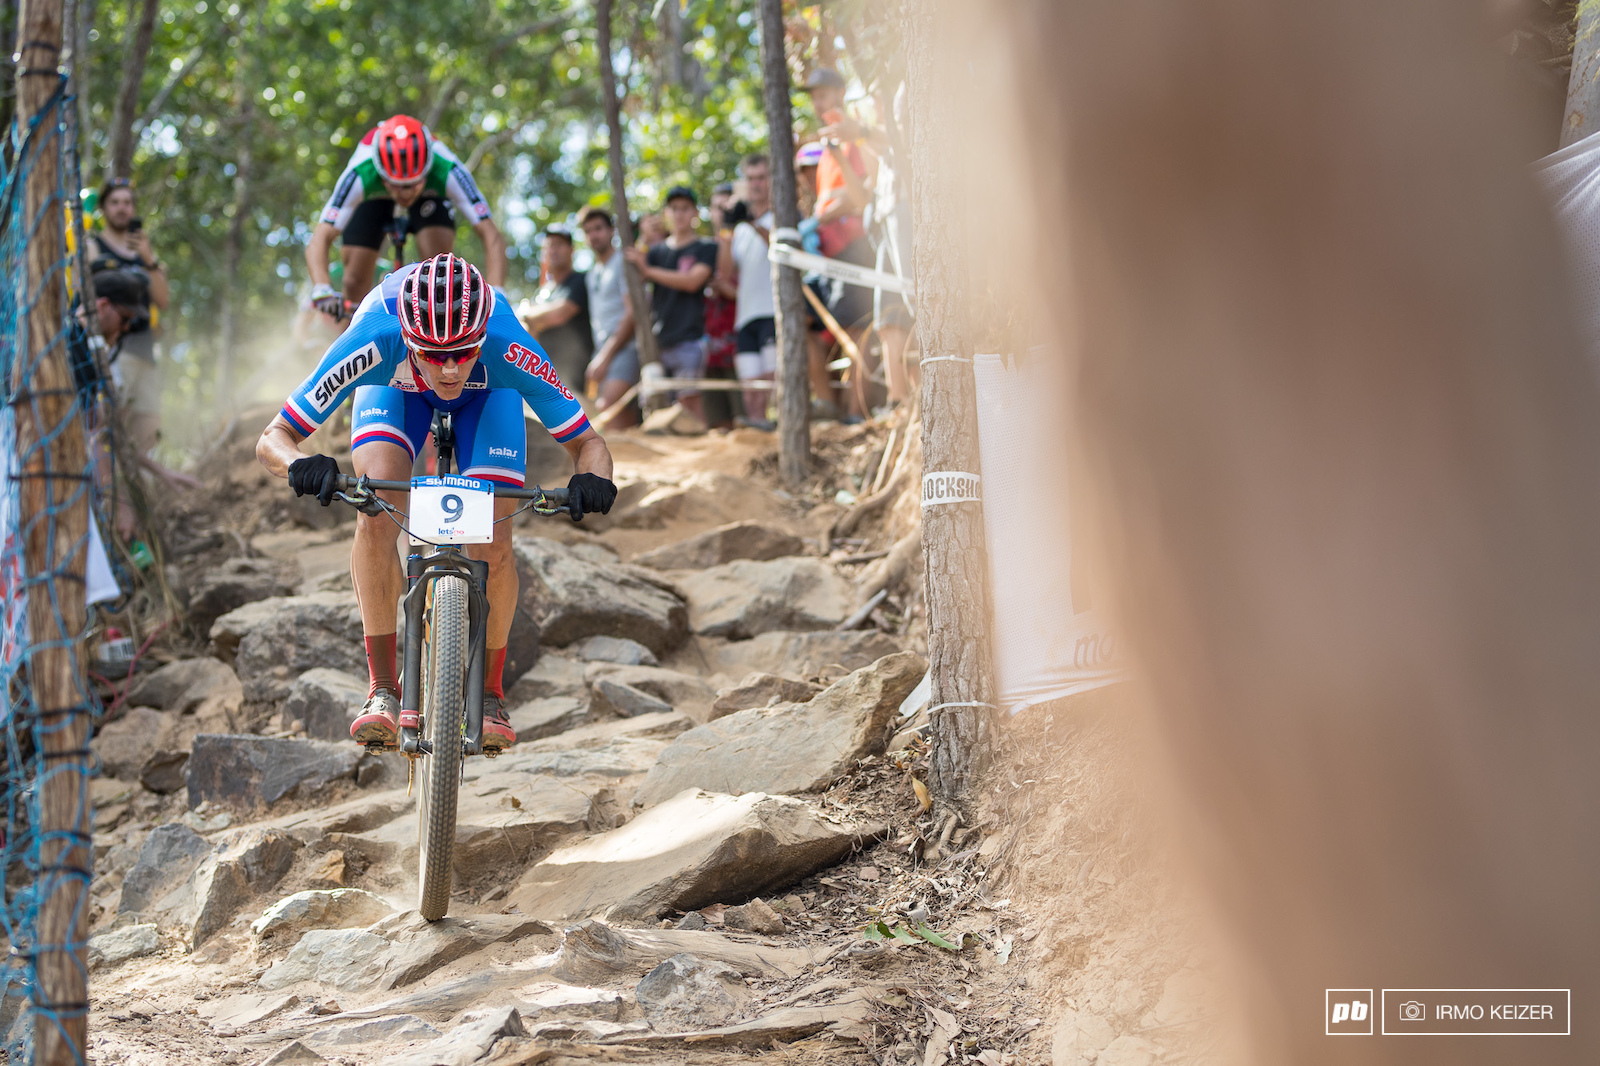 Kulhavy was in top form and charged hard trying to loose Schurter. Schurter observed and made his move in the last lap overtaking Kulhavy before the downhill towards Jacobs Ladder. Gaining 10 seconds in the downhill Schurter rode to the win comfortably